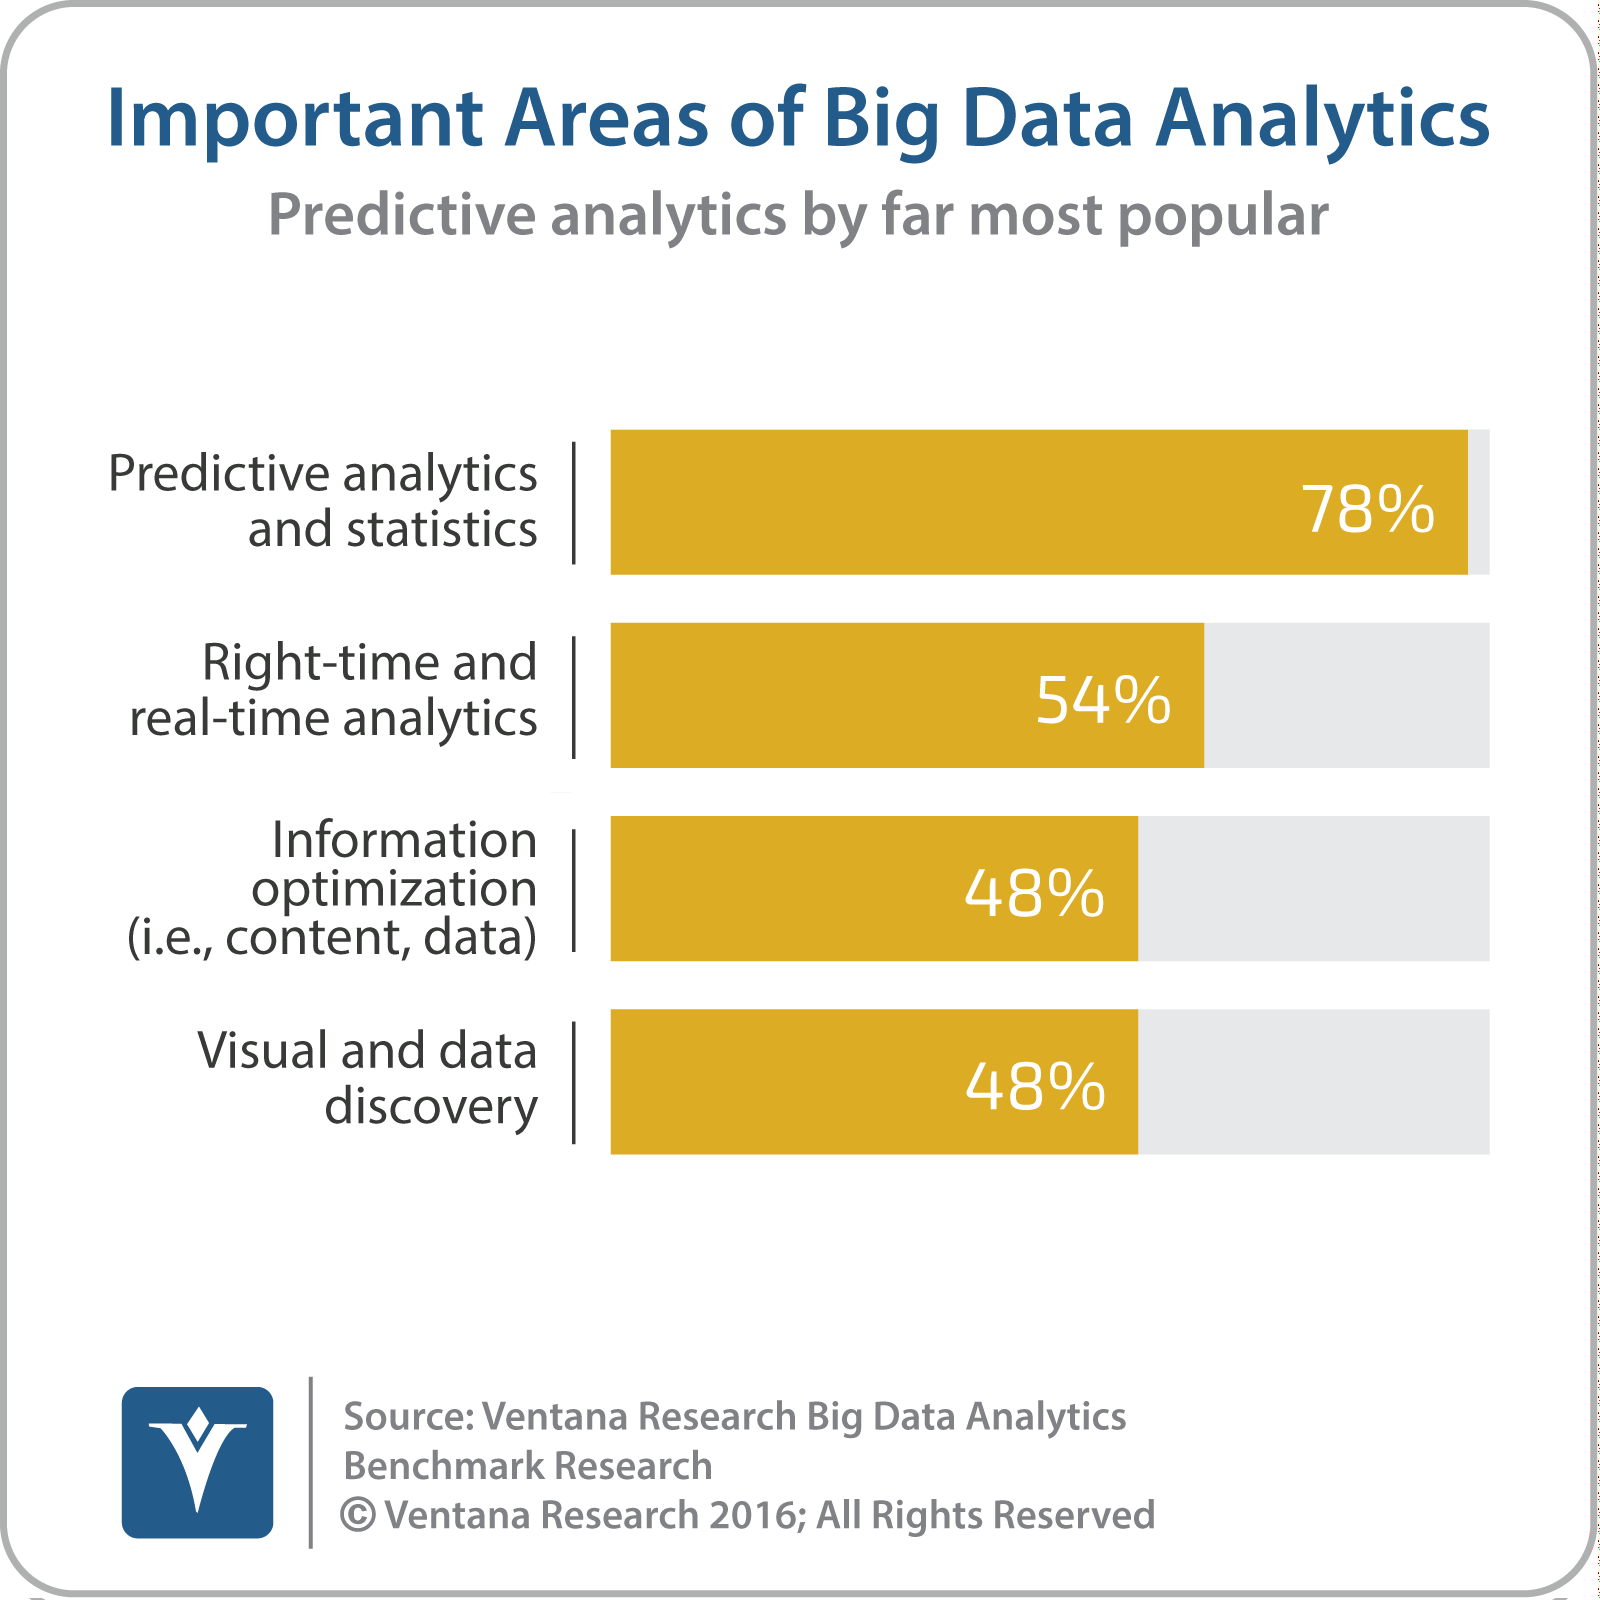 vr_Big_Data_Analytics_19_important_areas_of_big_data_analytics_updated-2.png